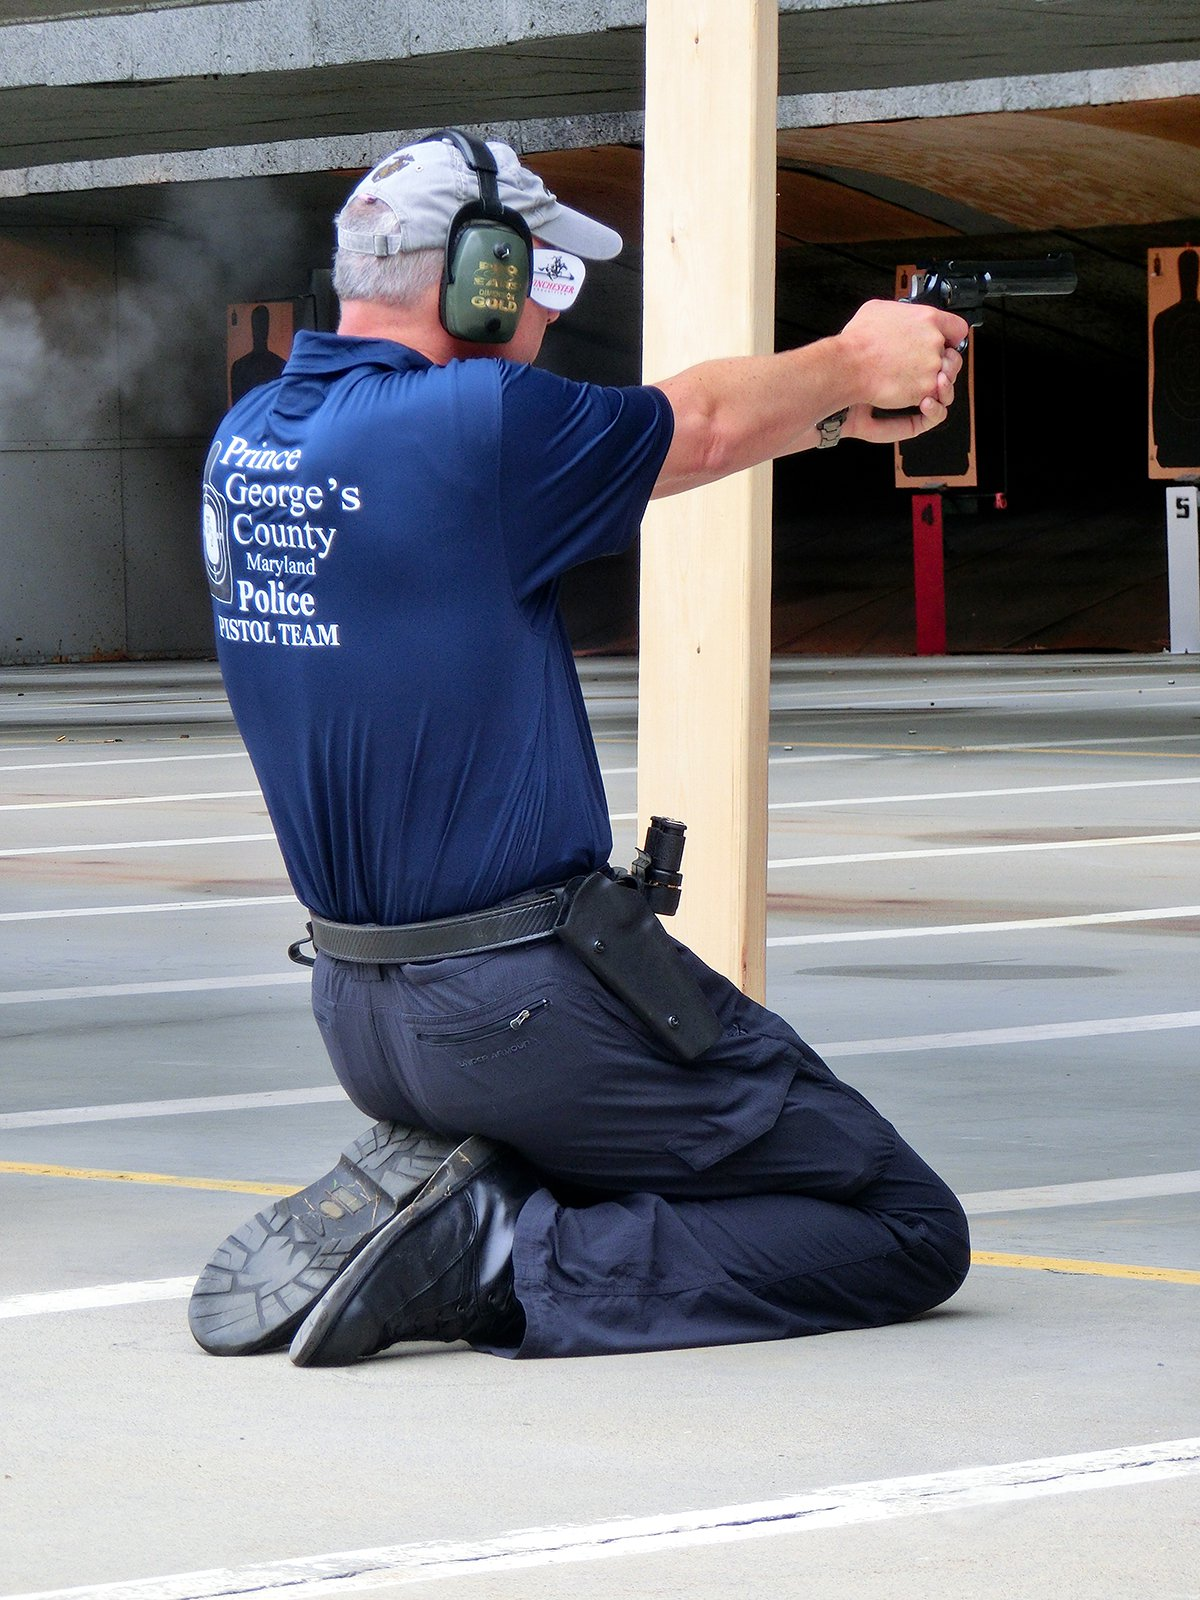 A Prince George's County Police Department competitor participates in the Pistol Action Combat event at the 2015 World Police and Fire Games